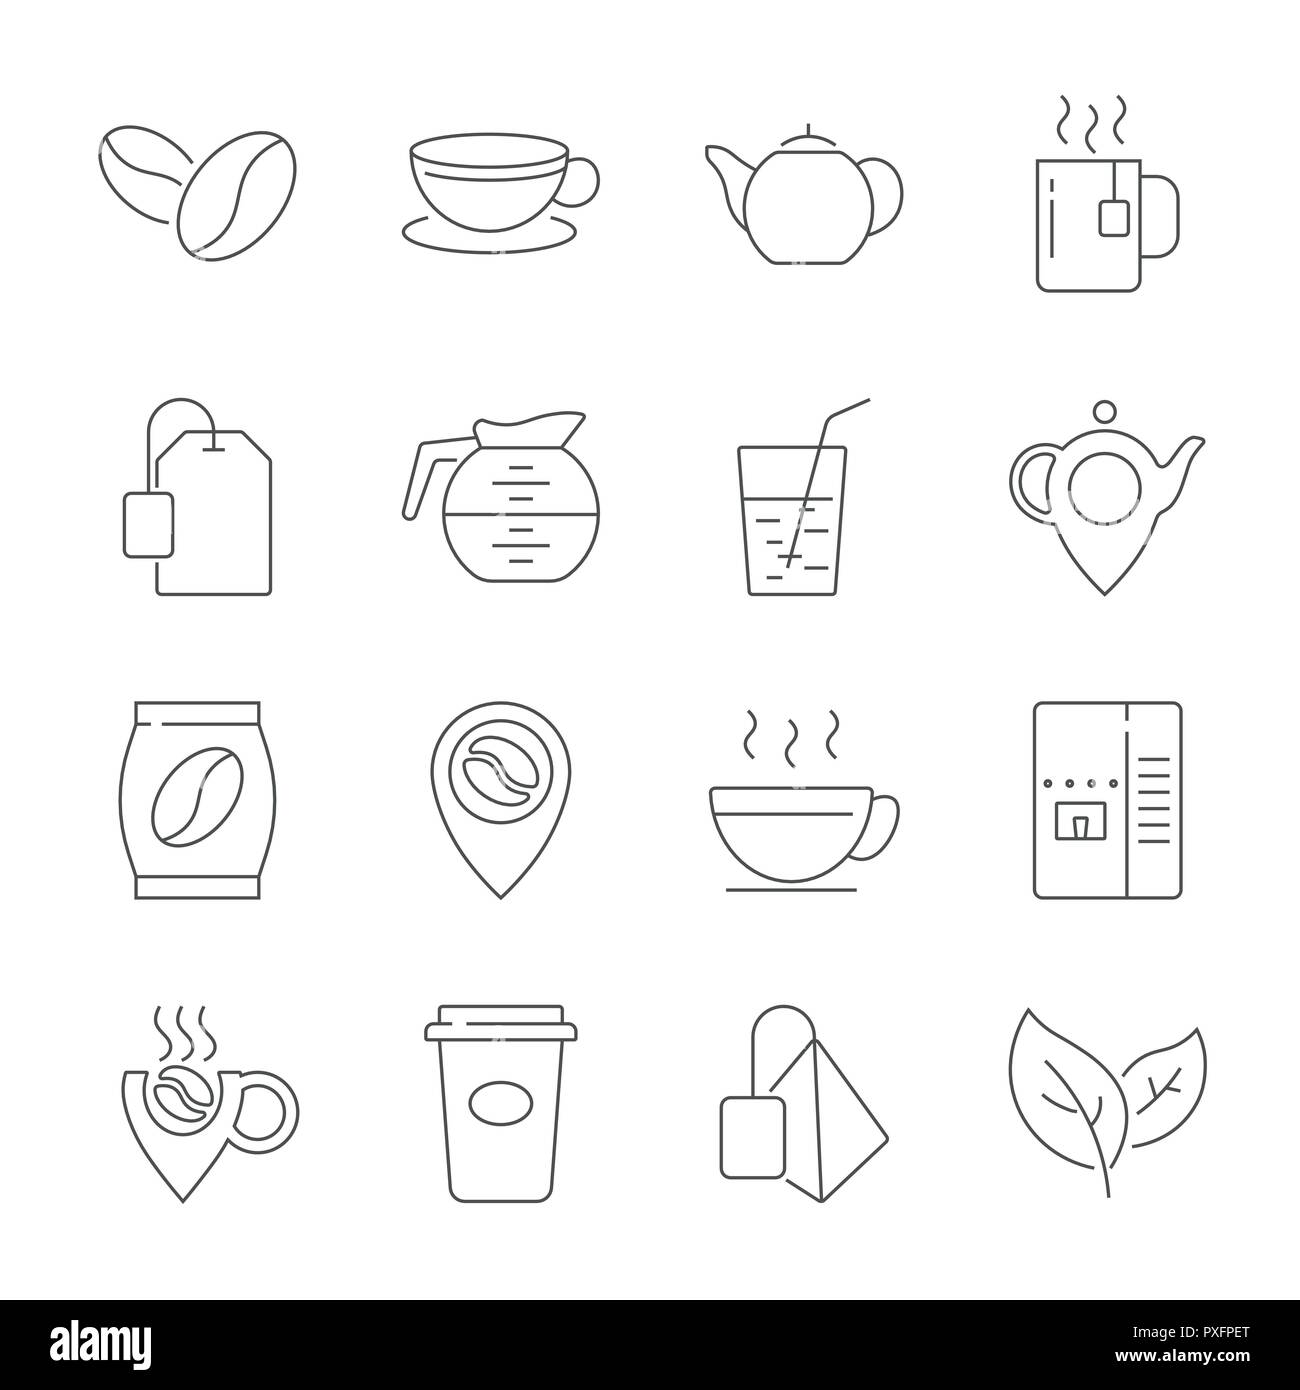 Set of Coffee and Tea Vector Line Icons. Contains such Icons as Cup of Tea, Teabags, Coffee beans and Green Tea Leaves, a pitcher of Water, Sugar Cubes and more. Editable Stroke. Stock Vector